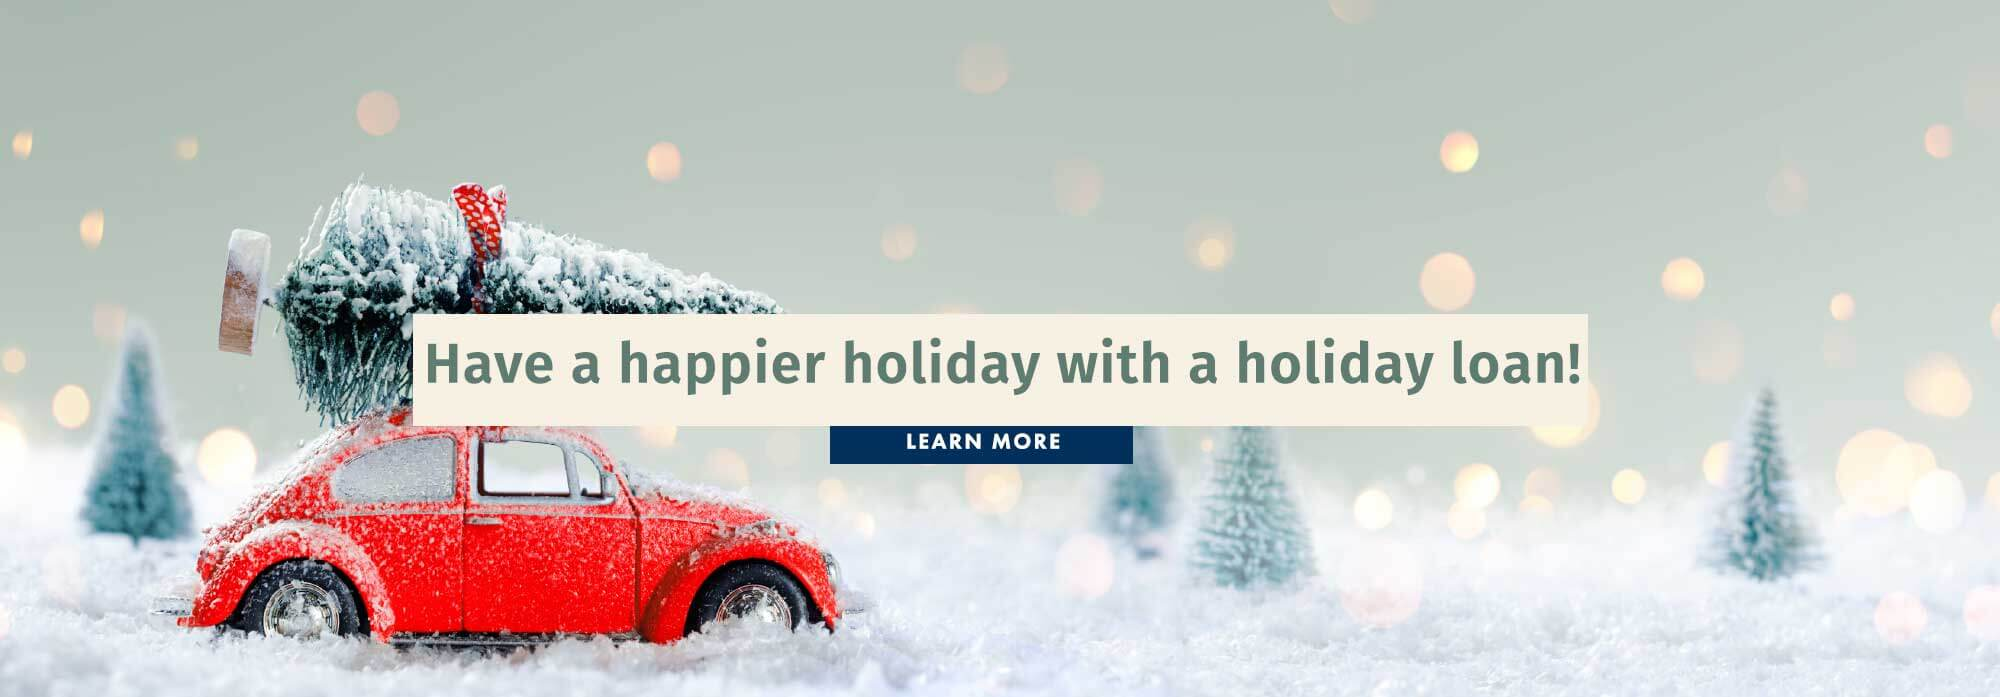 Have a happier holiday with a holiday loan!